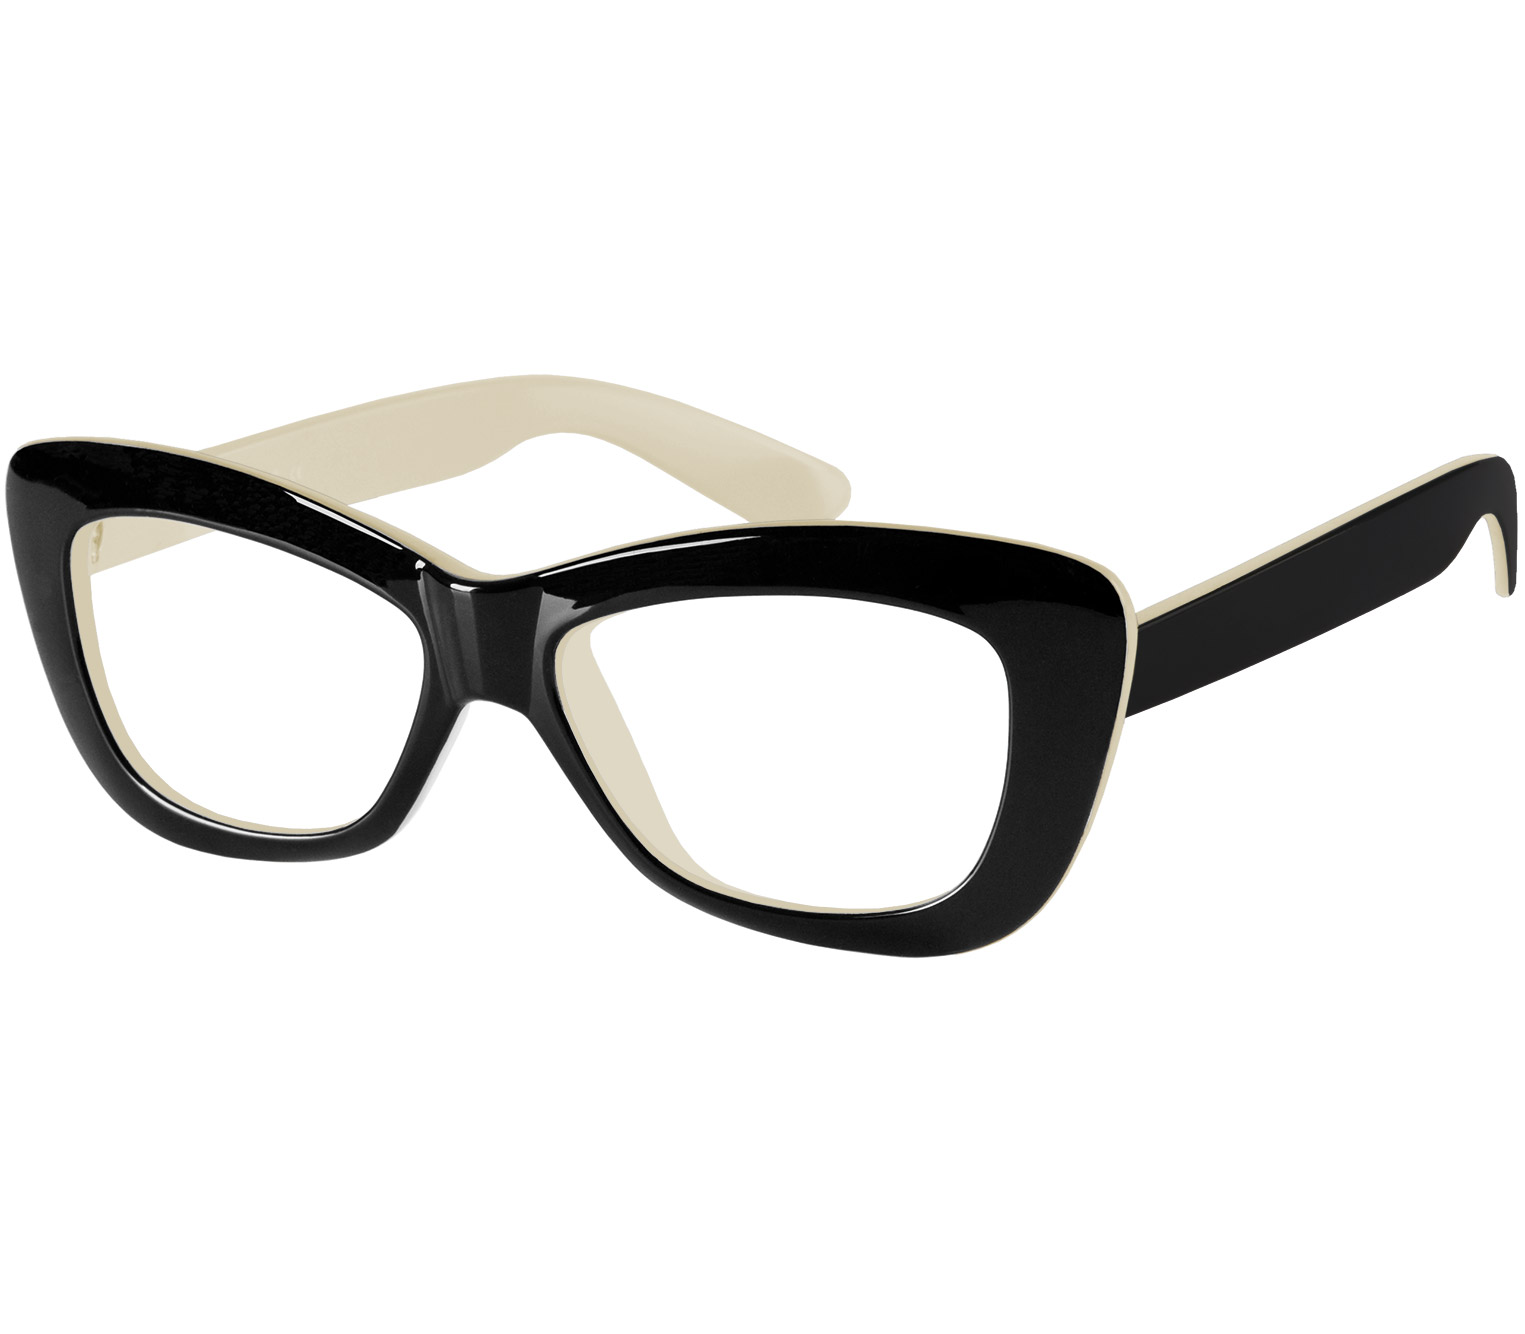 Main Image (Angle) - Crushed (Black) Cat Eye Reading Glasses